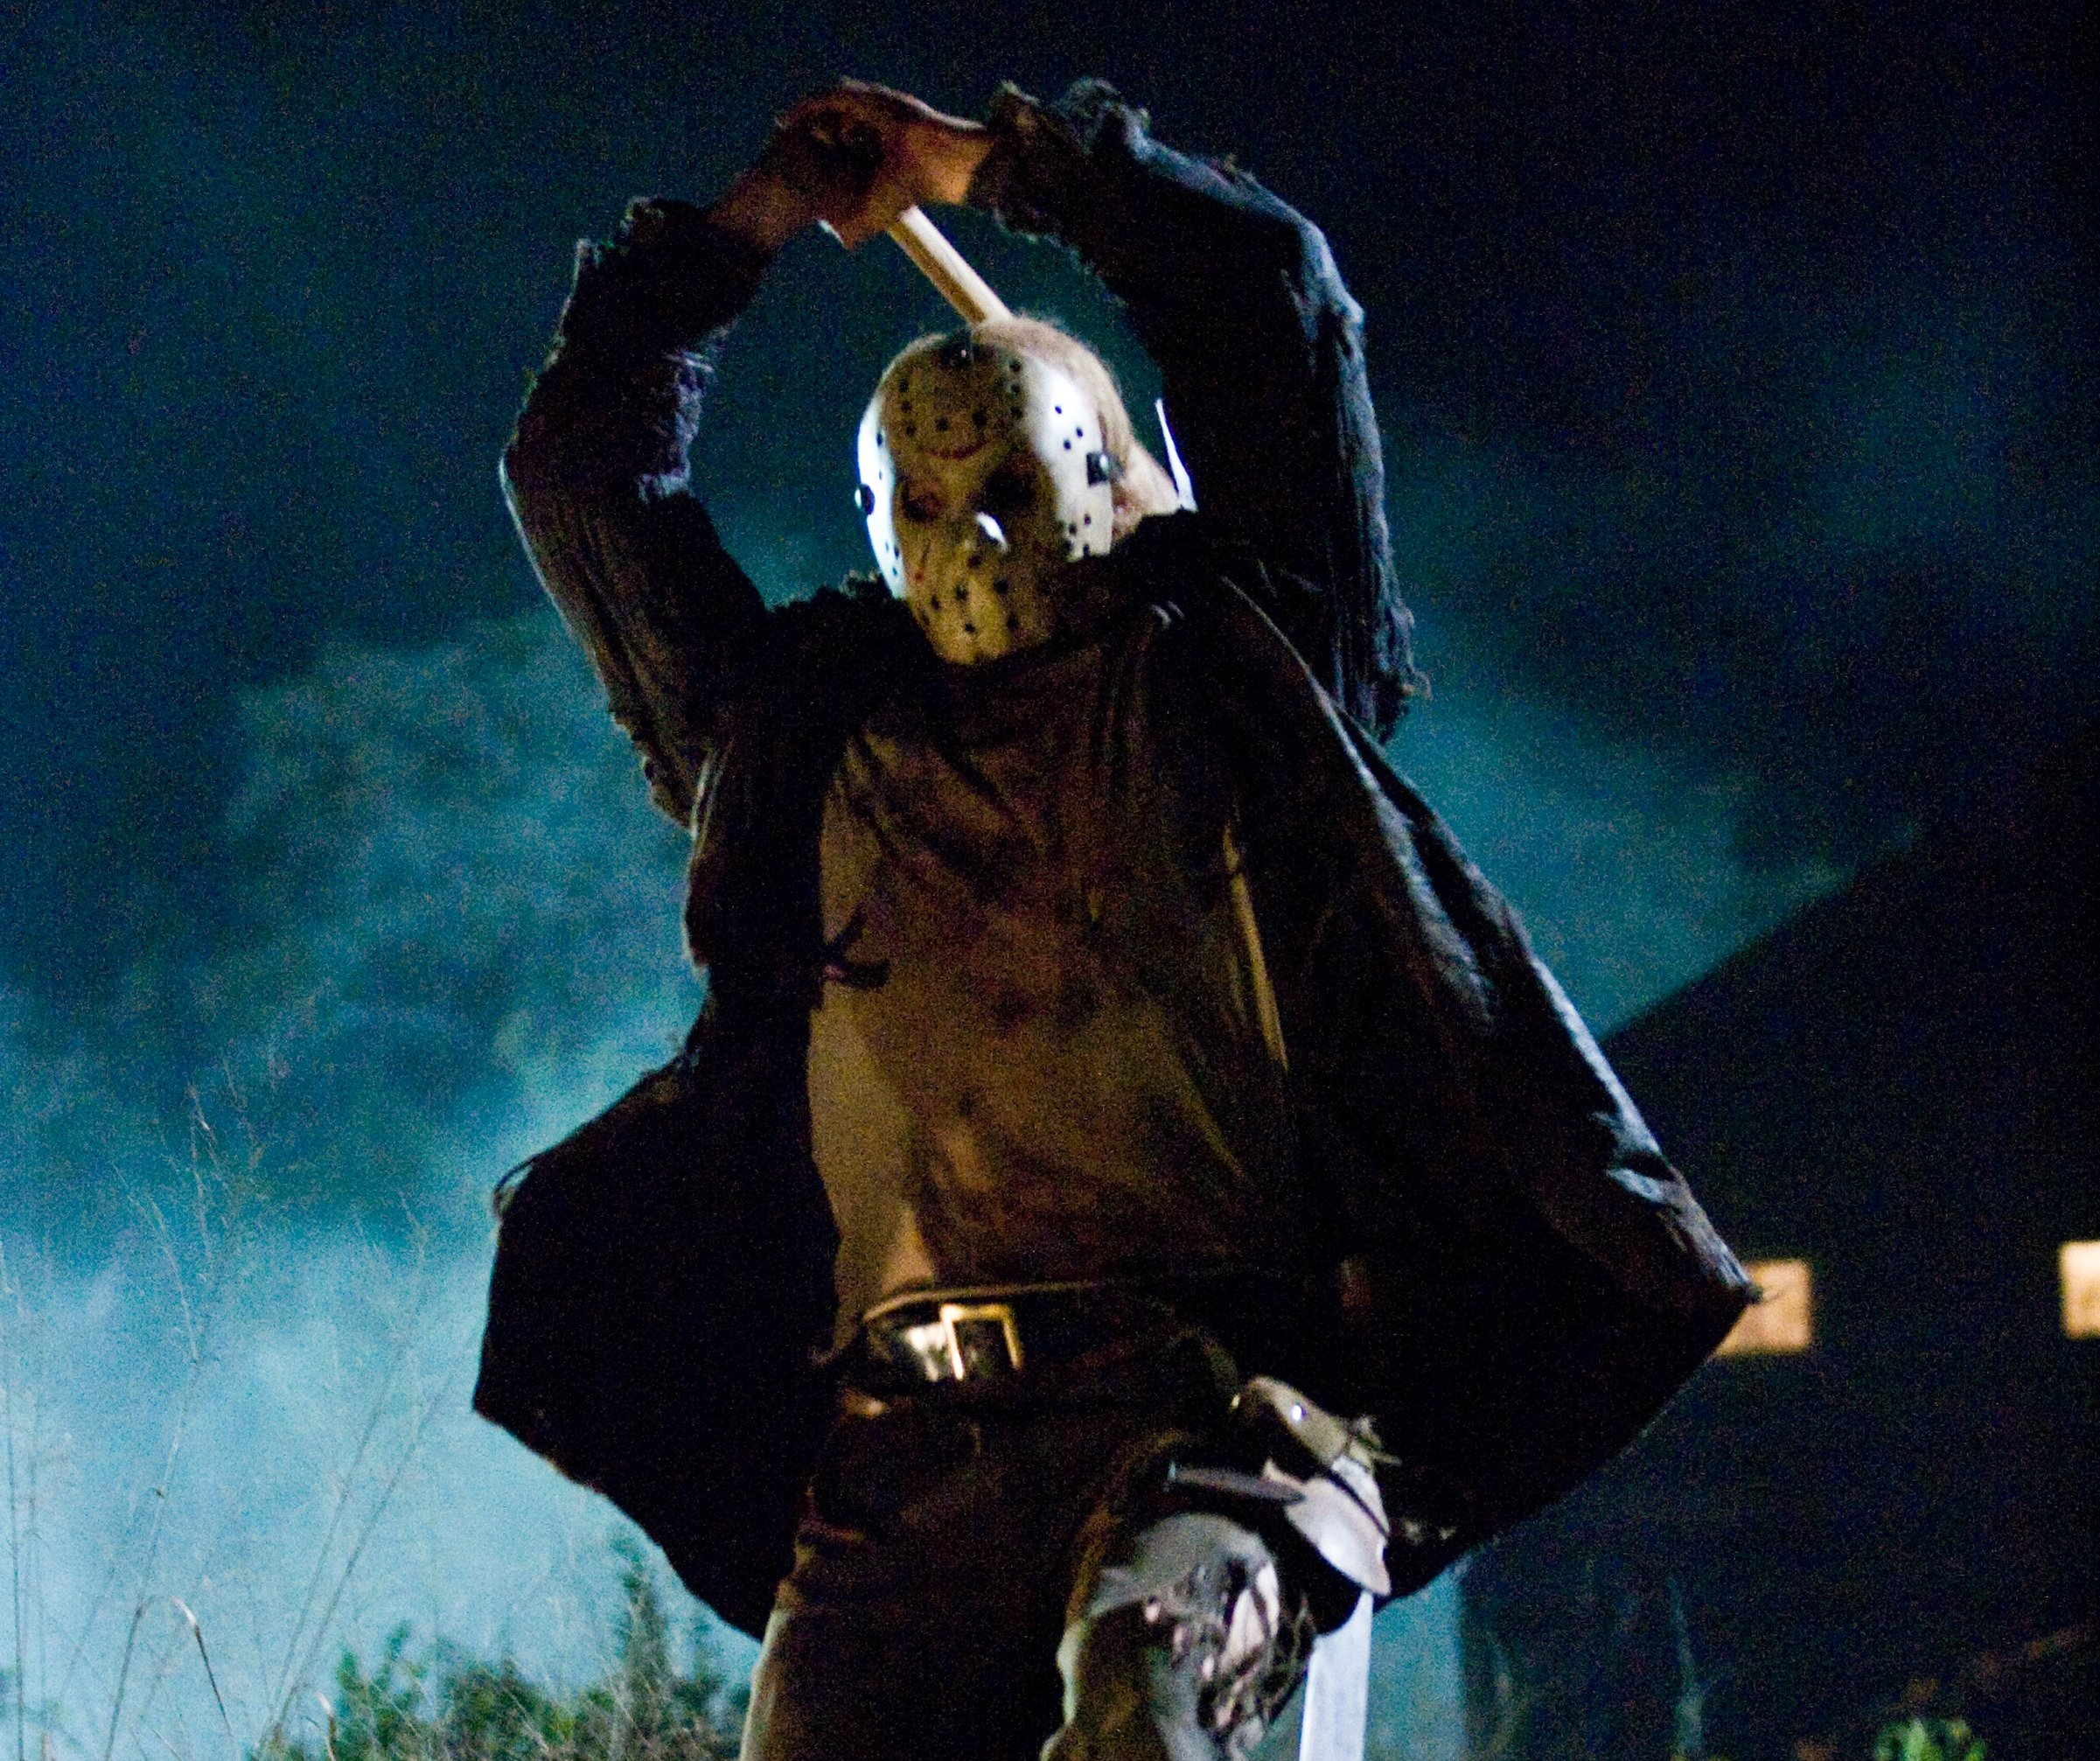 7 reasons why Friday the 13th is considered an unlucky date (From Kingston Guardian)